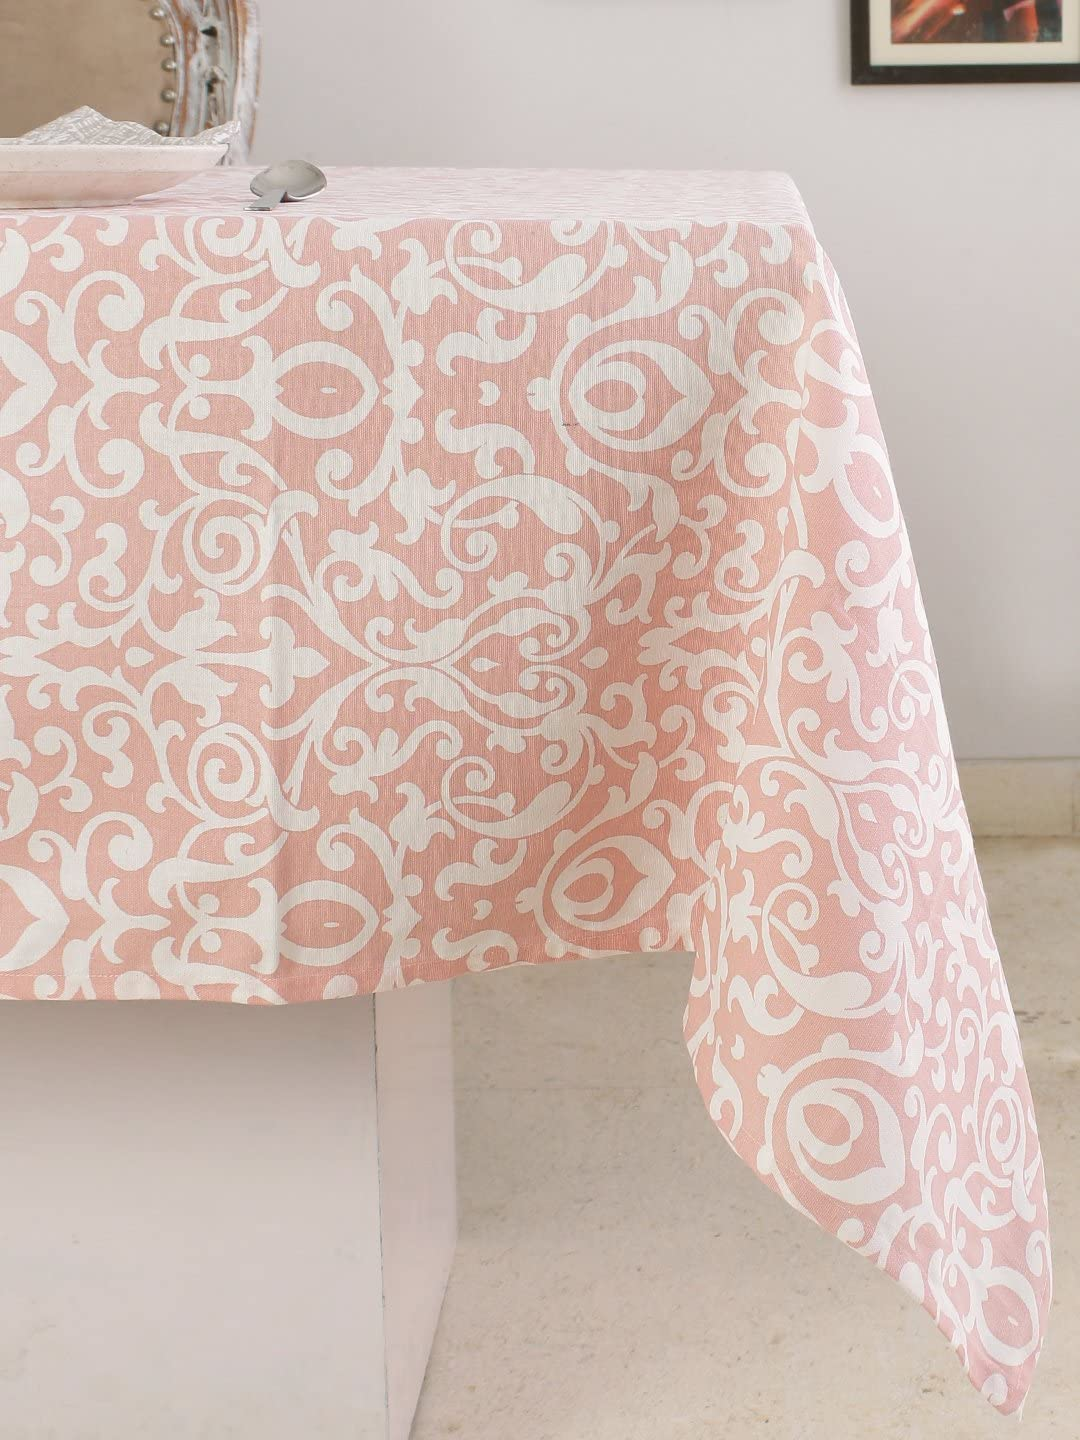 """Plush Home 100% Cotton Eco - Friendly Baroque - Pink Printed Rectangular Tablecloth for Home, Table, Family Dinners, Thanksgiving, Christmas, Weddings & Cocktail Parties 